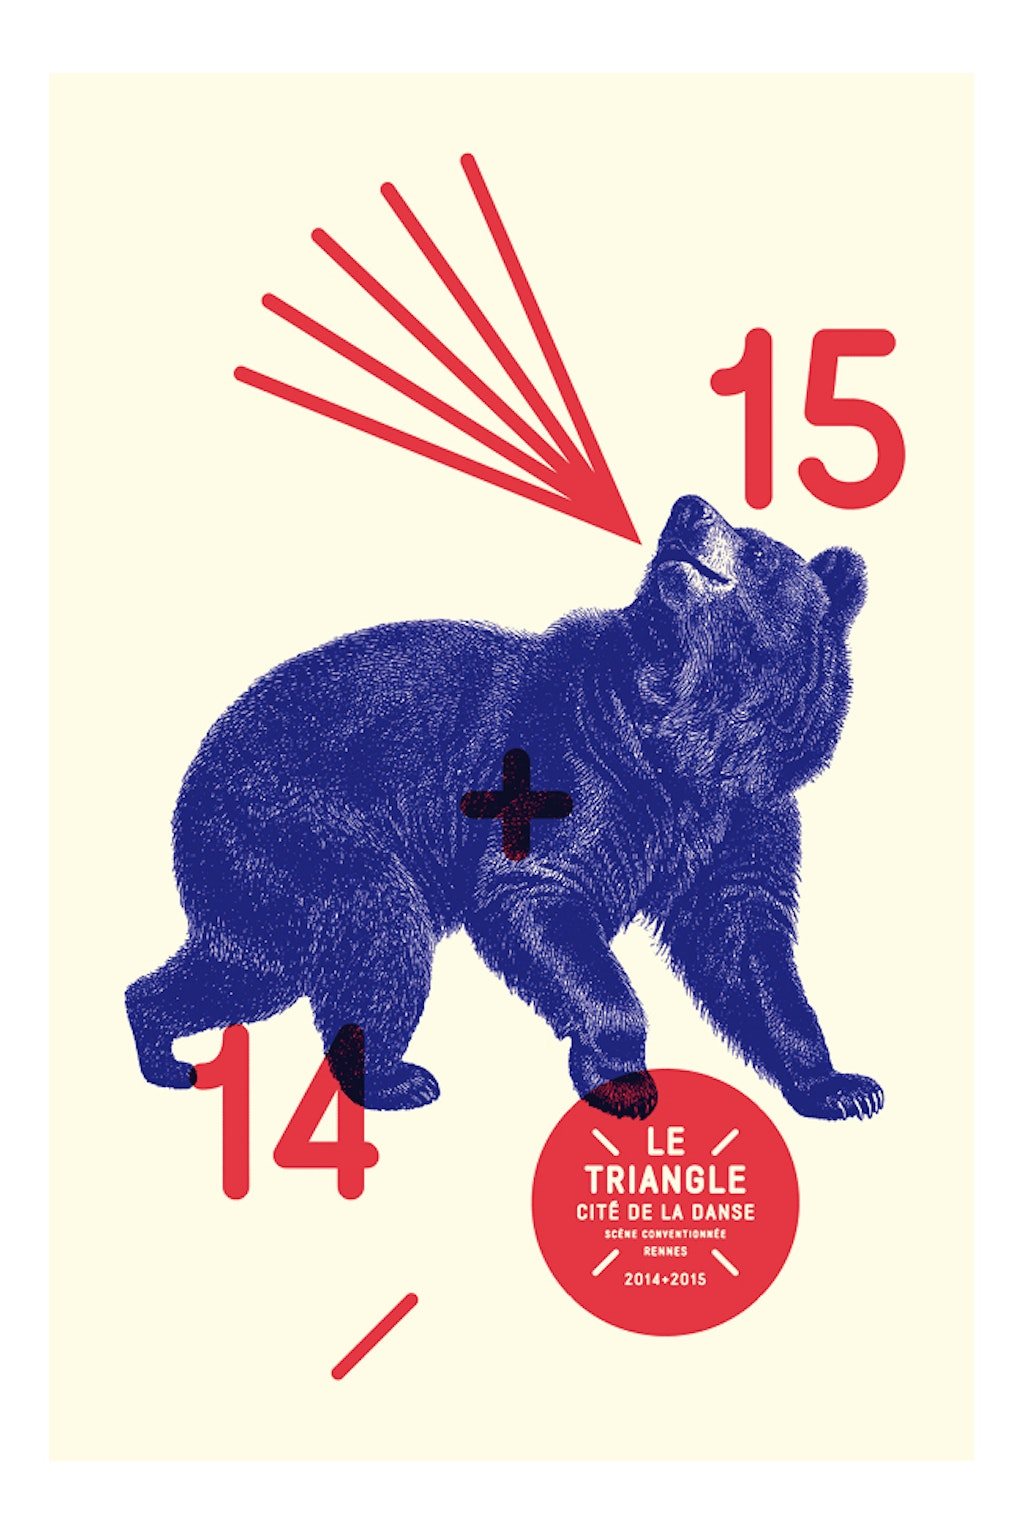 Le Triangle 14+15 (Rennes)